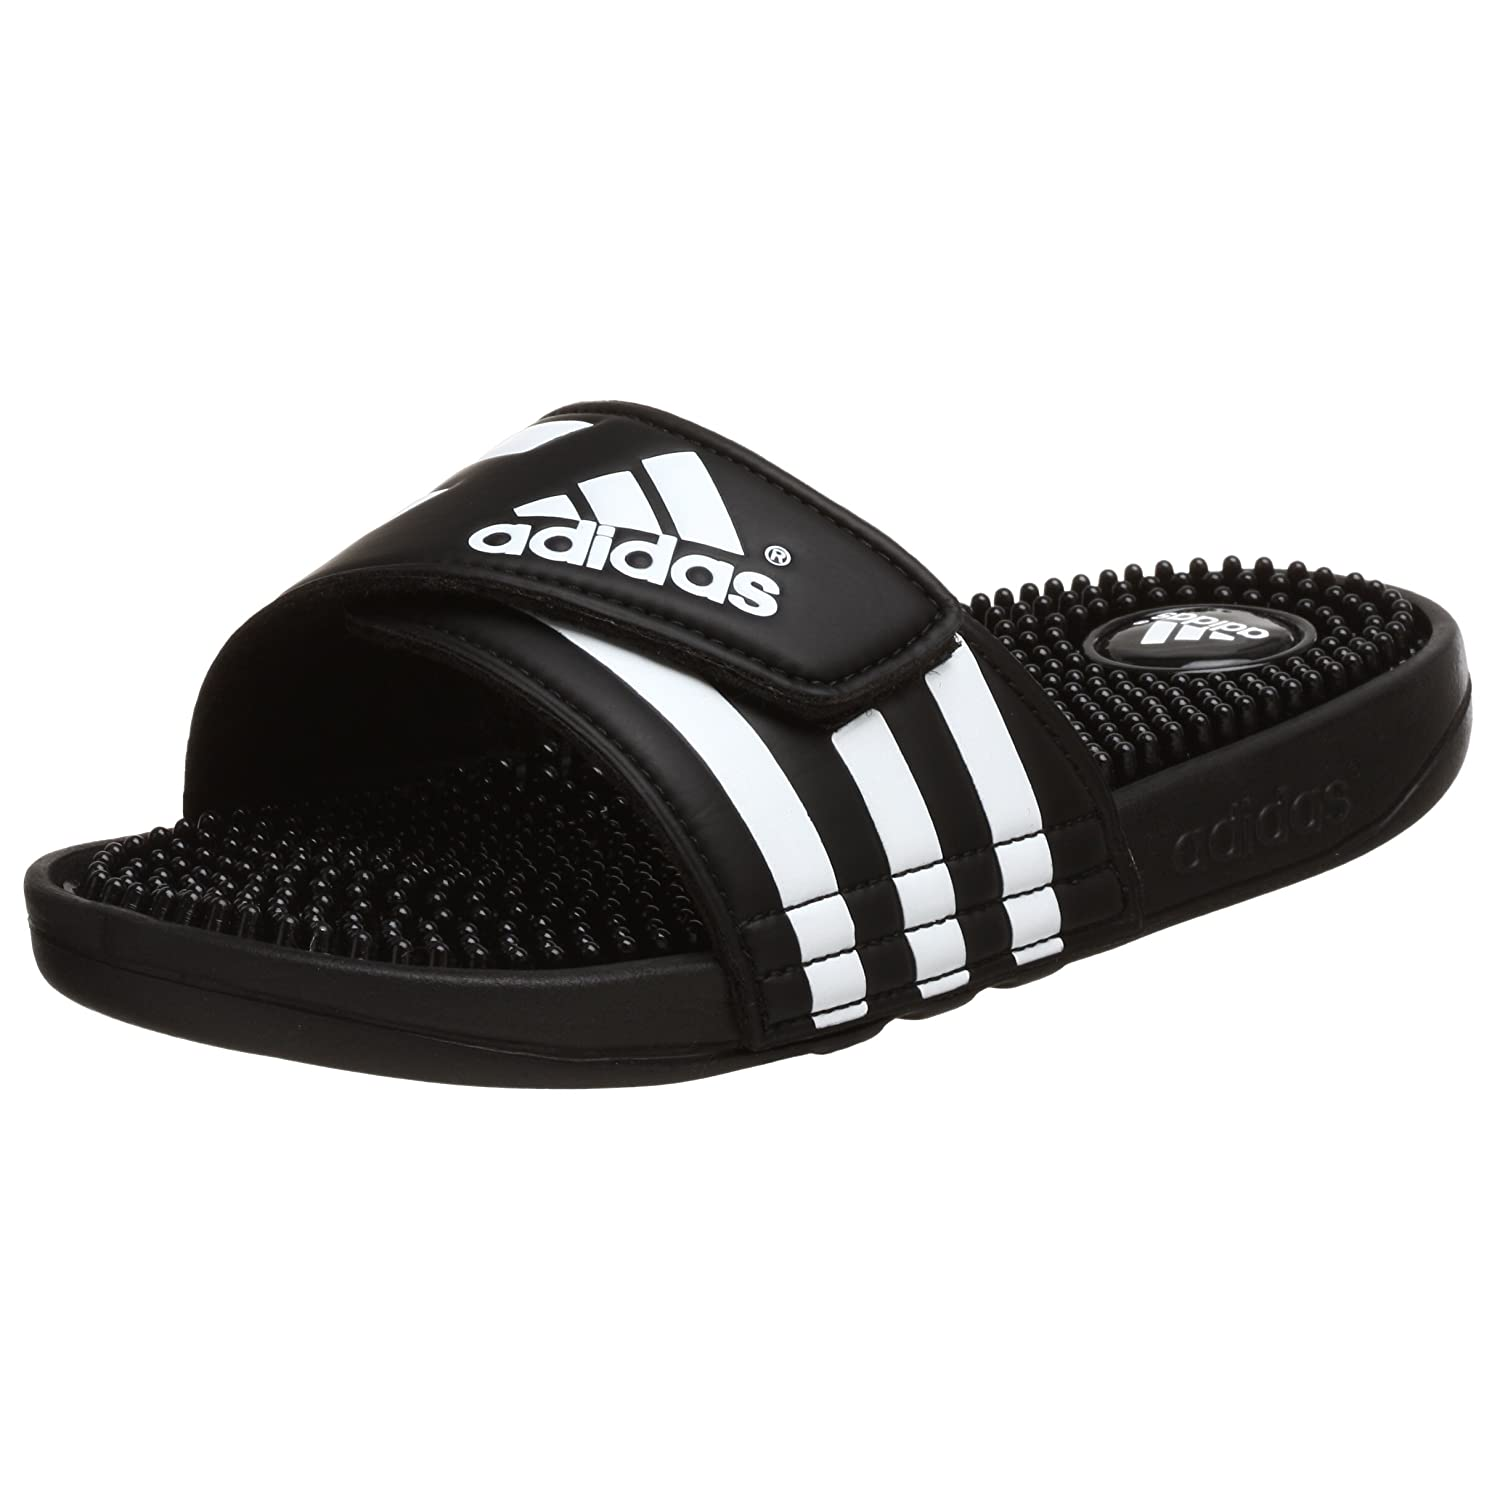 adidas acupuncture slippers